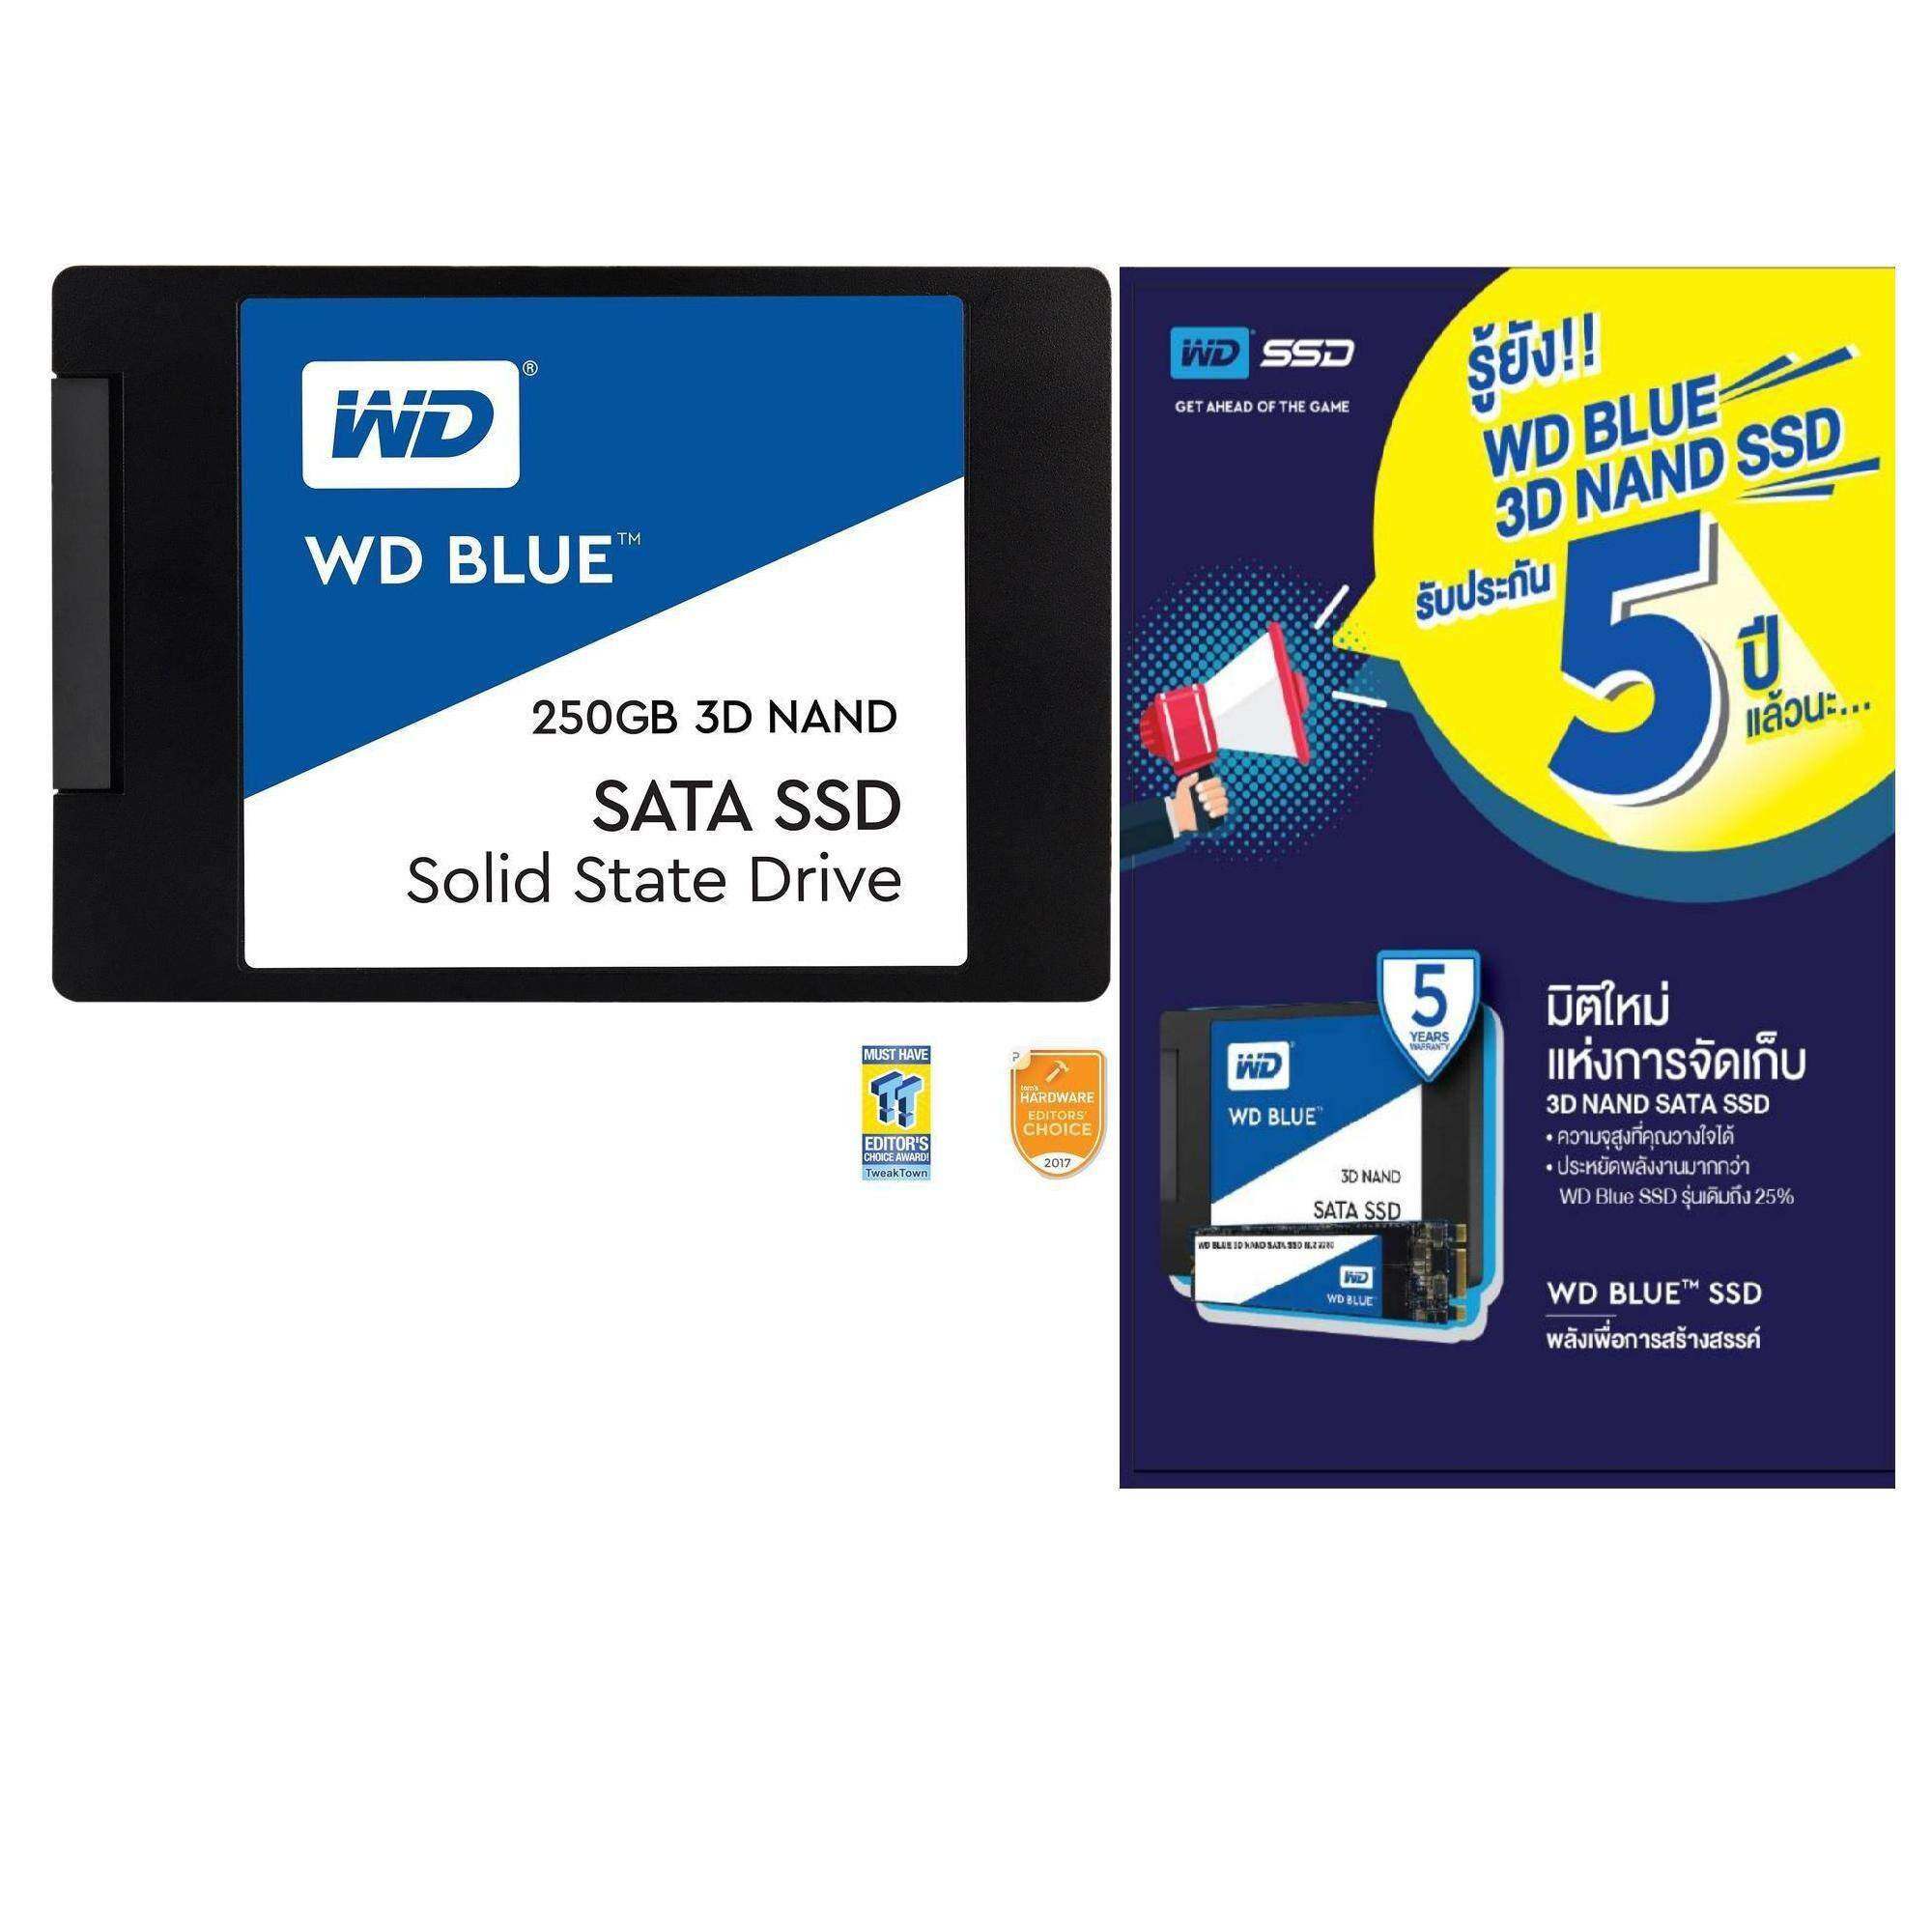 "250GB SSD (เอสเอสดี)WD Blue 3D NAND 250GB PC SSD - SATA III 6 Gb/s 2.5""/7mm Solid State Drive - WDS250G2B0A -5 YEARS WARANTY (BY SYNNEX)"